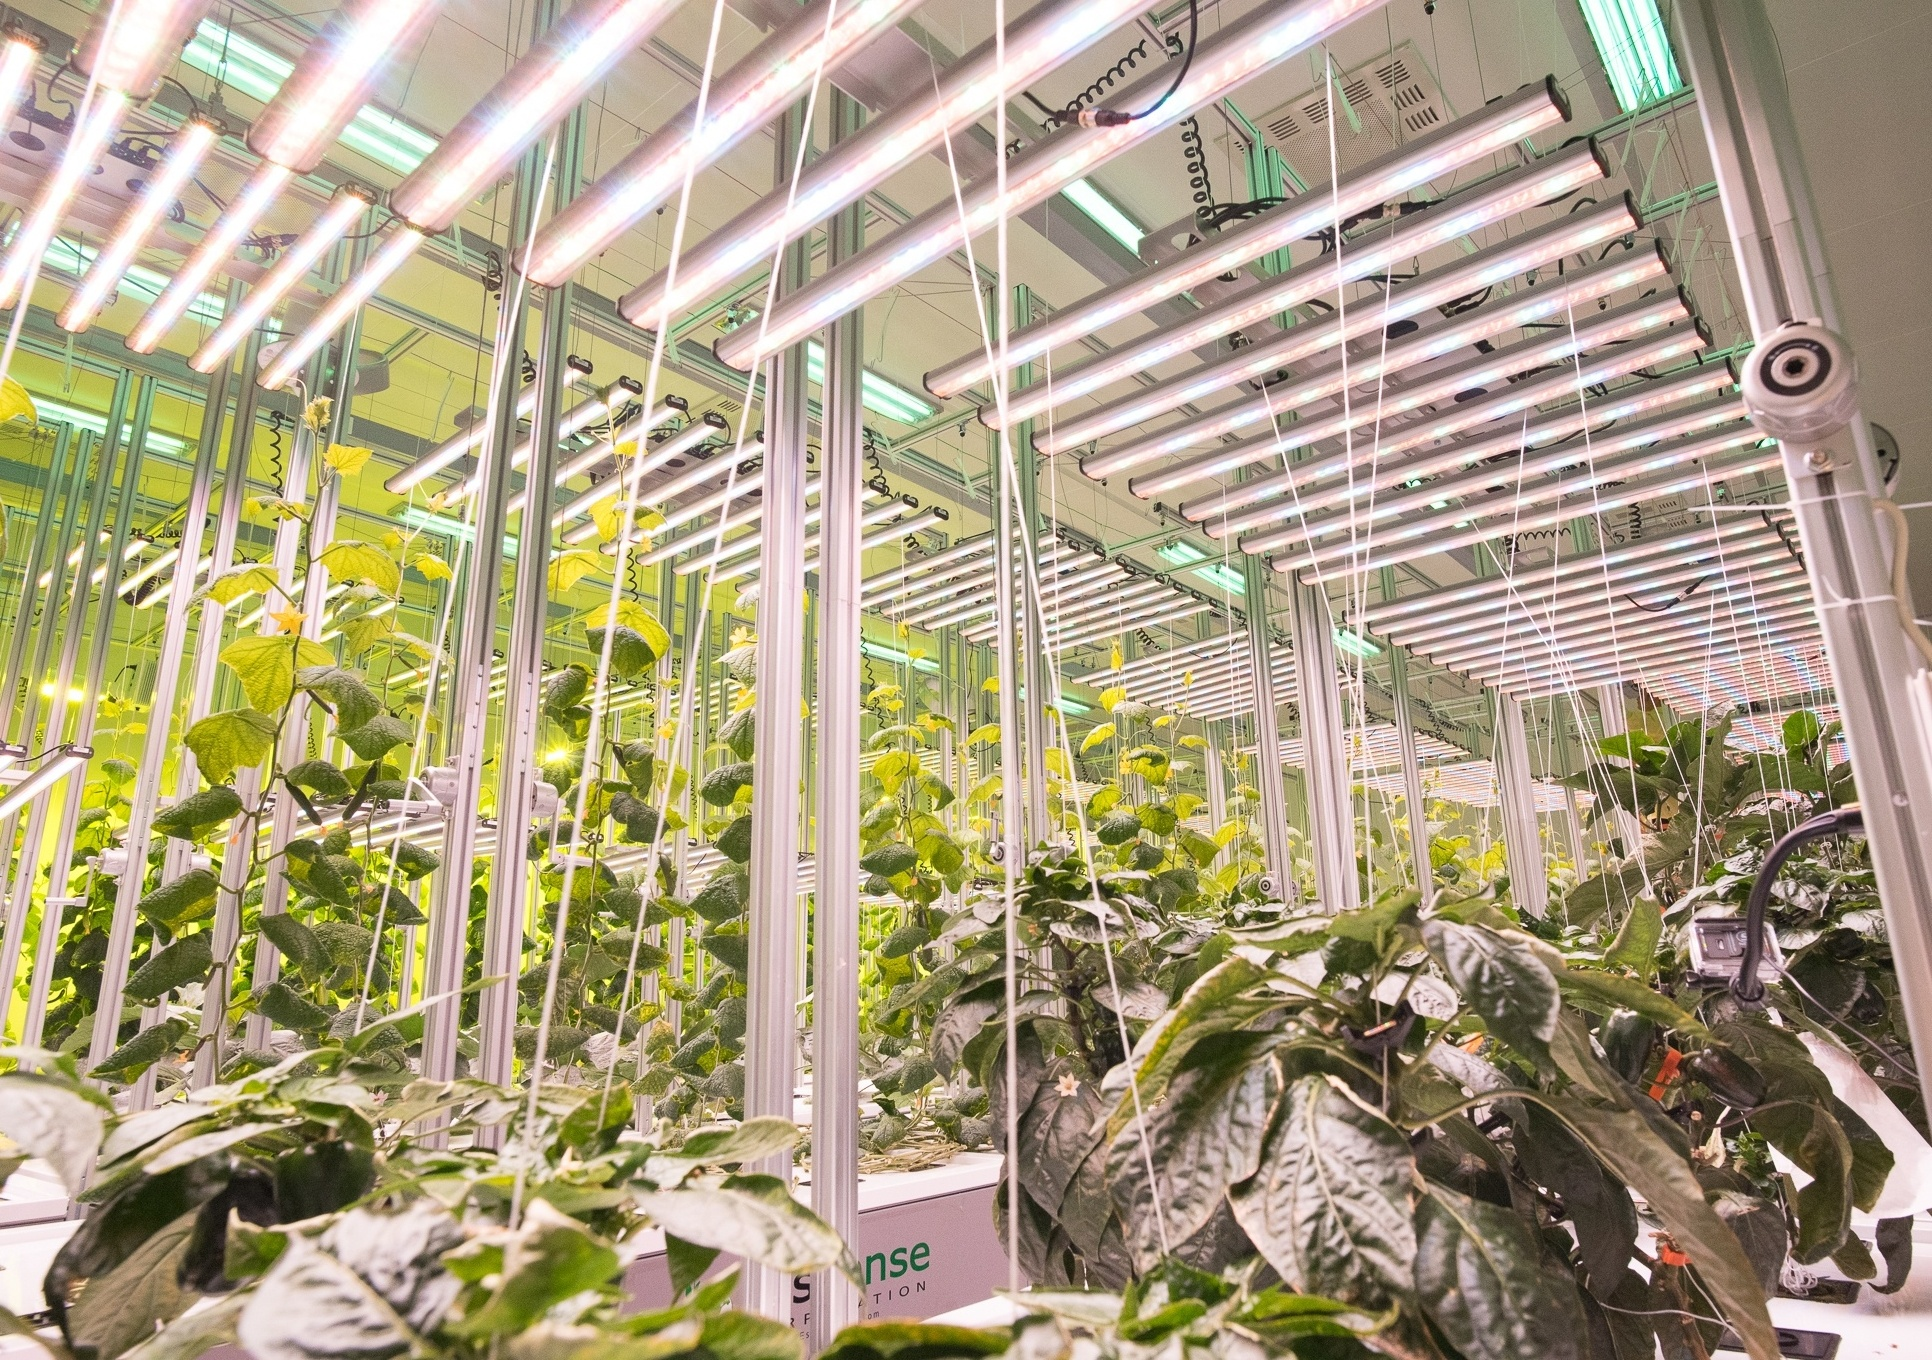 Commercial cultivation with efficient LED grow lights